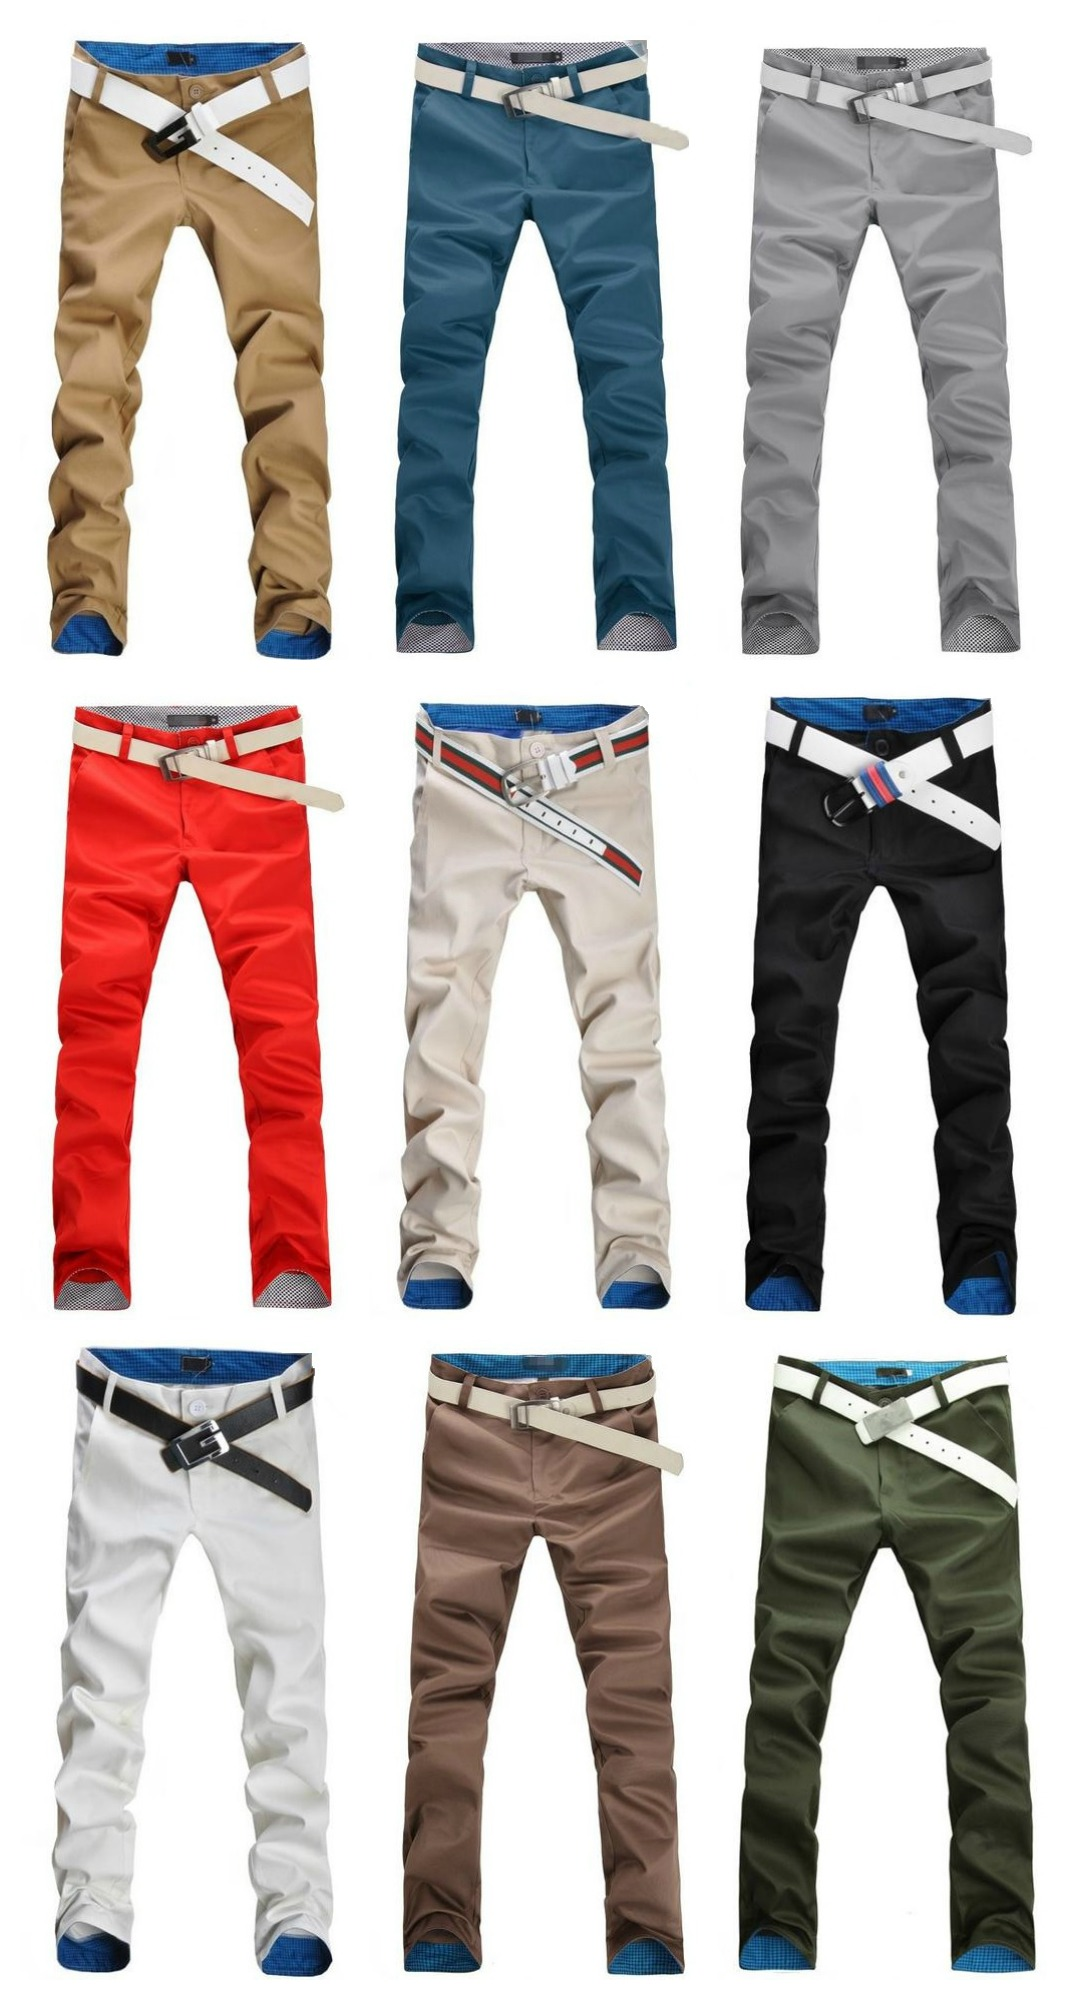 Casual Slim Fit Pants Modern Style - Details on the Waist